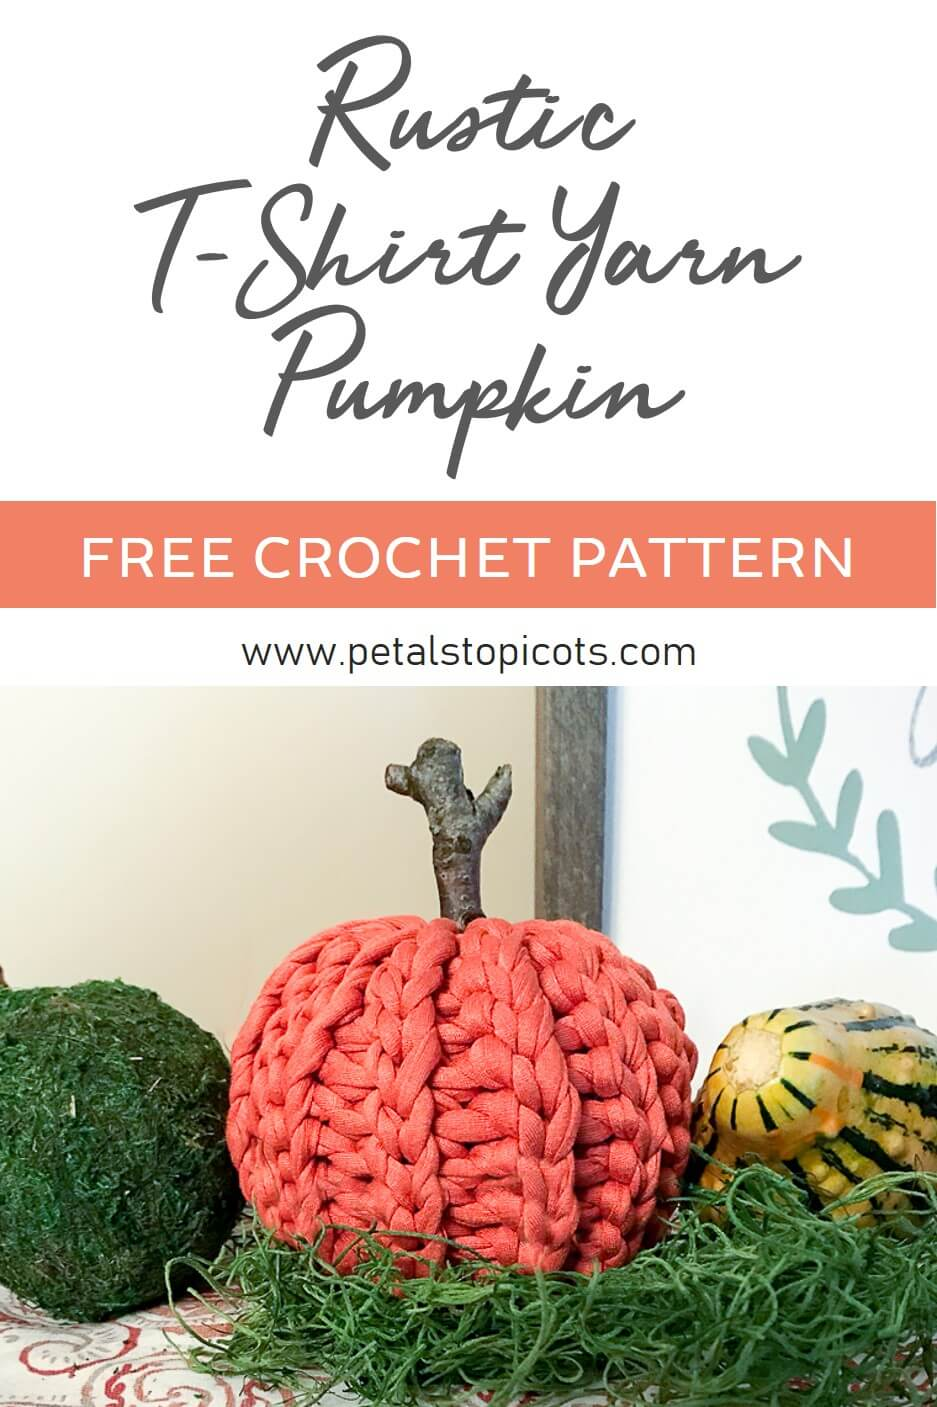 This rustic crochet pumpkin is made with T-shirt yarn and is super quick to work up! The pattern is great for all crochet experience levels as well since it's worked flat, with no increasing or decreasing, and then seamed up and stuffed. The slip stitch pattern also adds a great knit-like accent. This little darling is sure to charm my decor all through the Autumn season! #petalstopicots